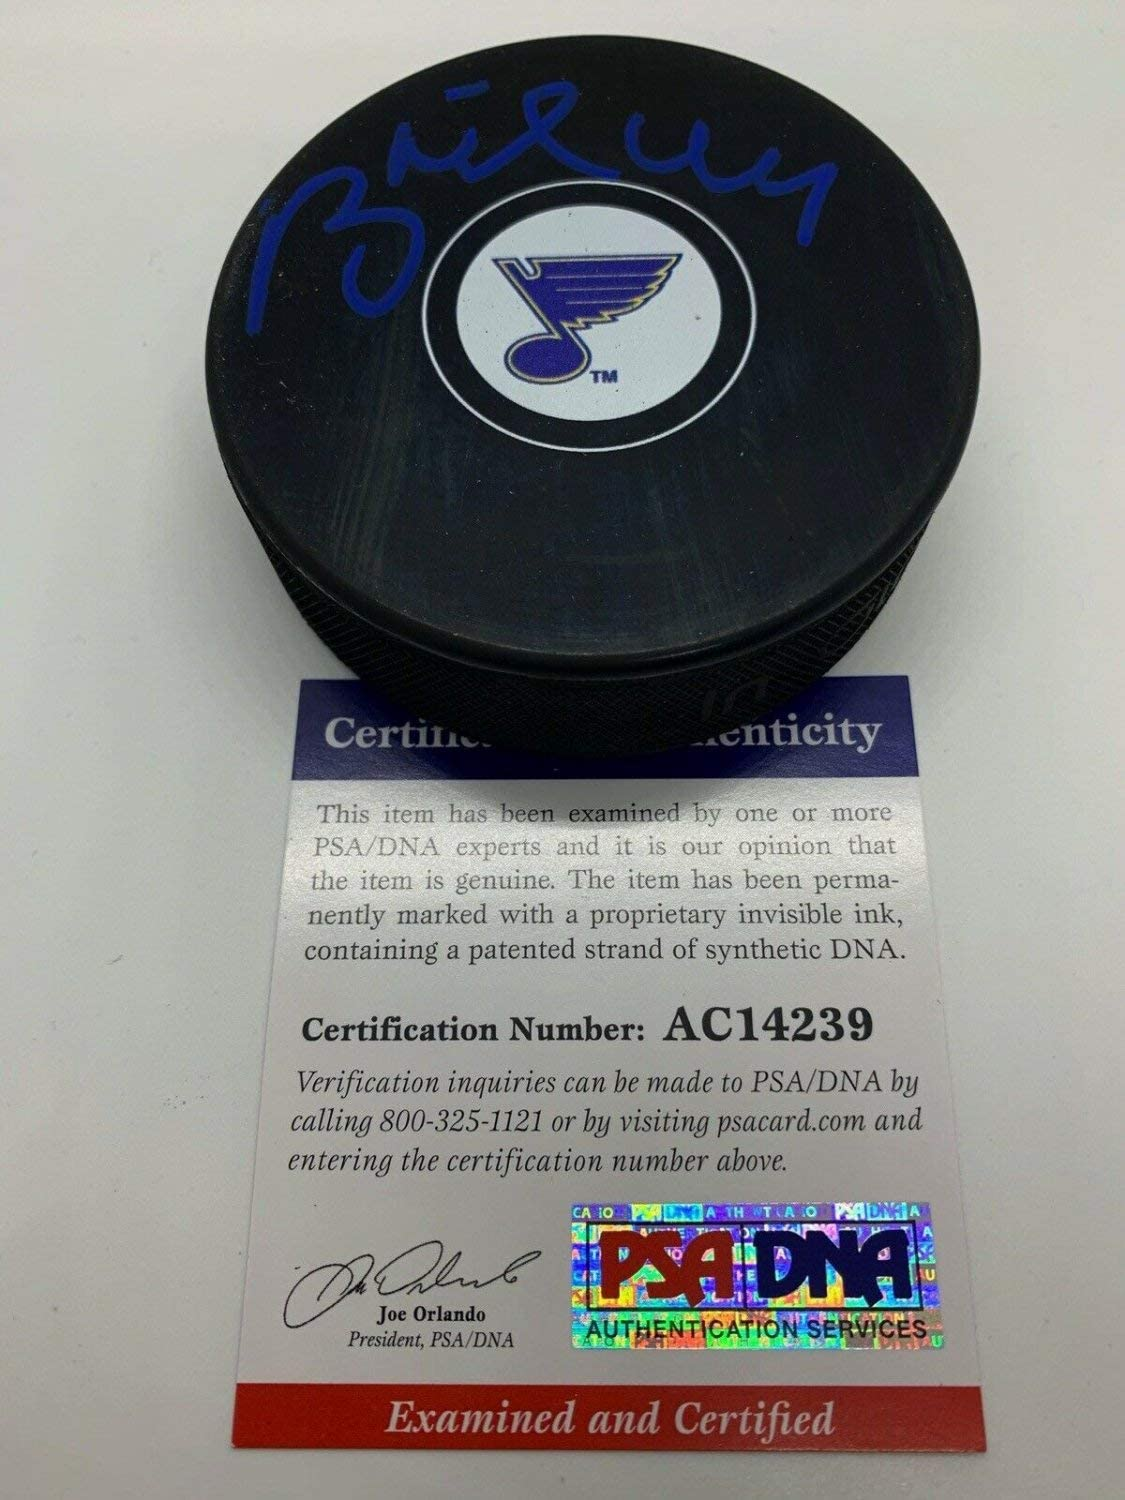 Brett Hull Autographed Signed St. Louis Blues Autograph Hockey Puck PSA DNA With Case 14239